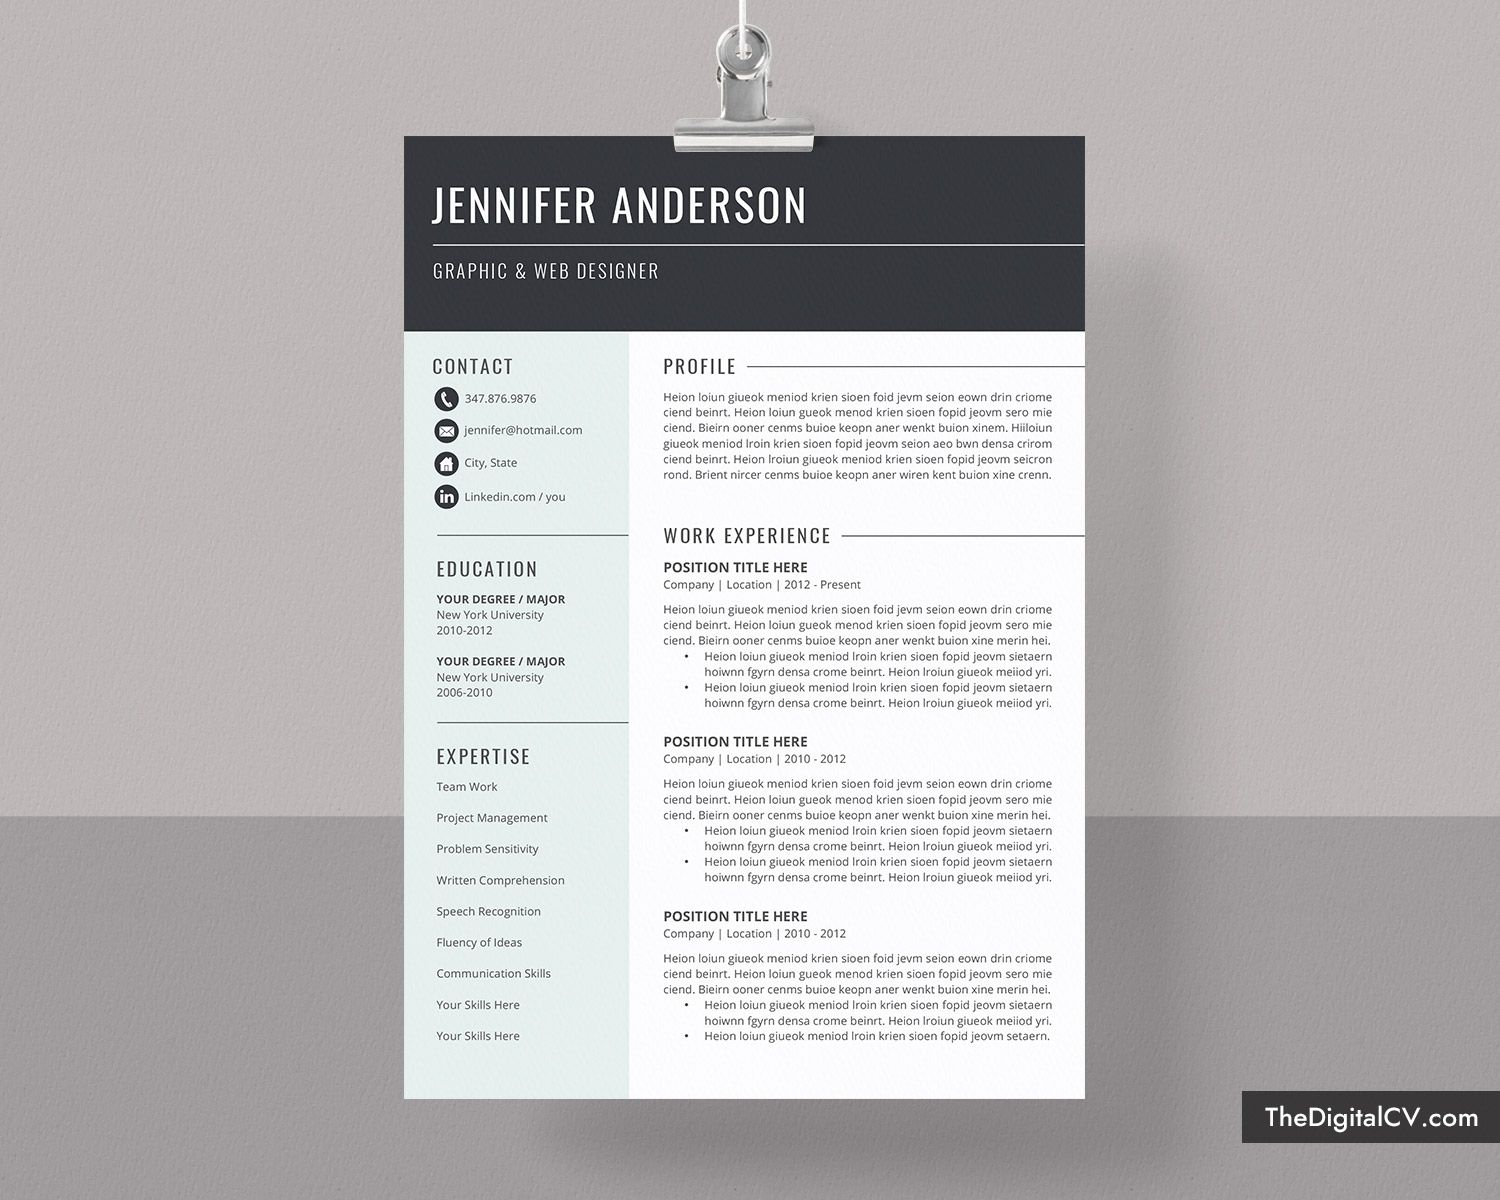 Basic And Simple Resume Template 2020 2021 Cv Template Cover Letter Microsoft Wor In 2020 Microsoft Word Resume Template Simple Resume Template Best Resume Template